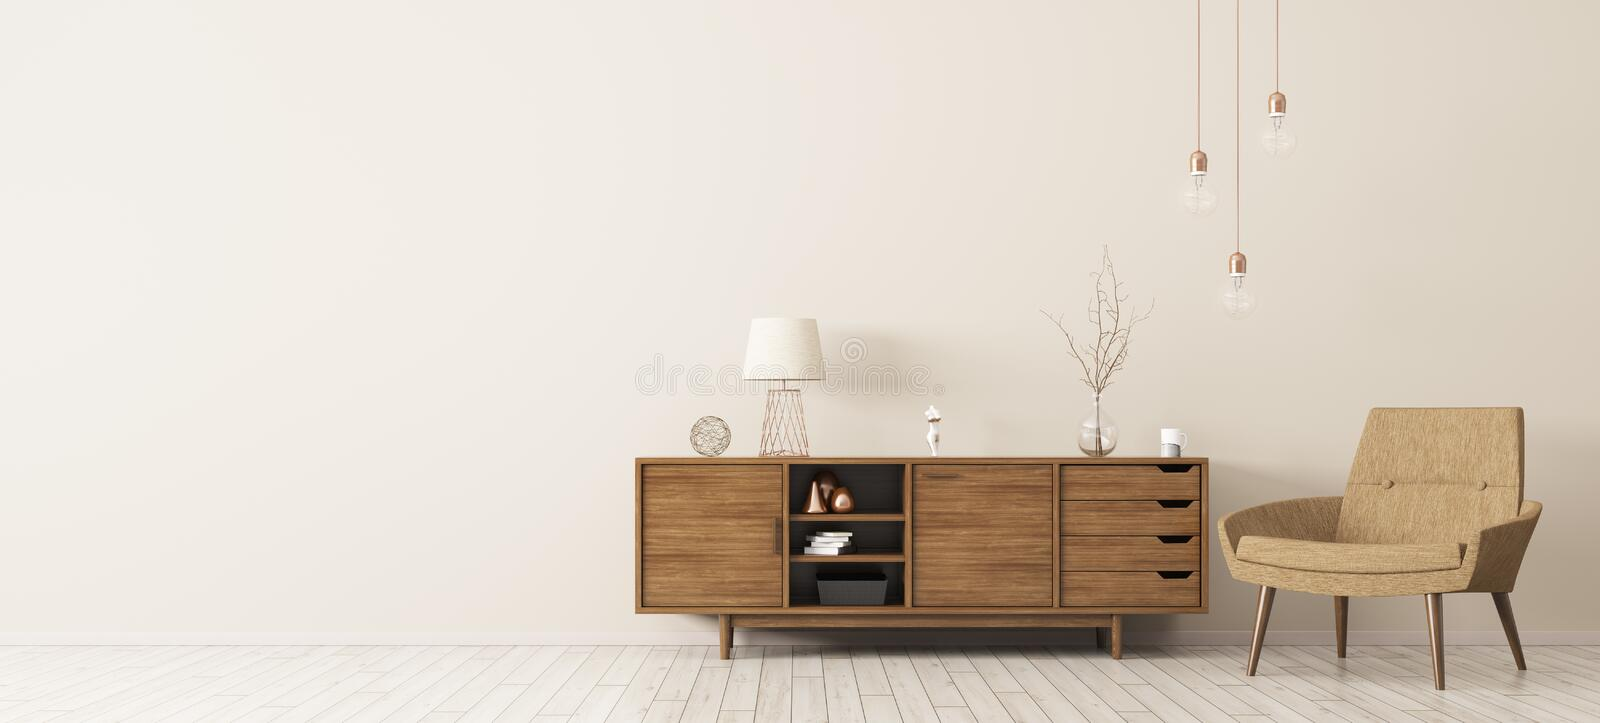 Interior with wooden cabinet and armchair 3d rendering. Modern interior of living room with brown wooden cabinet and armchair panorama 3d rendering stock illustration